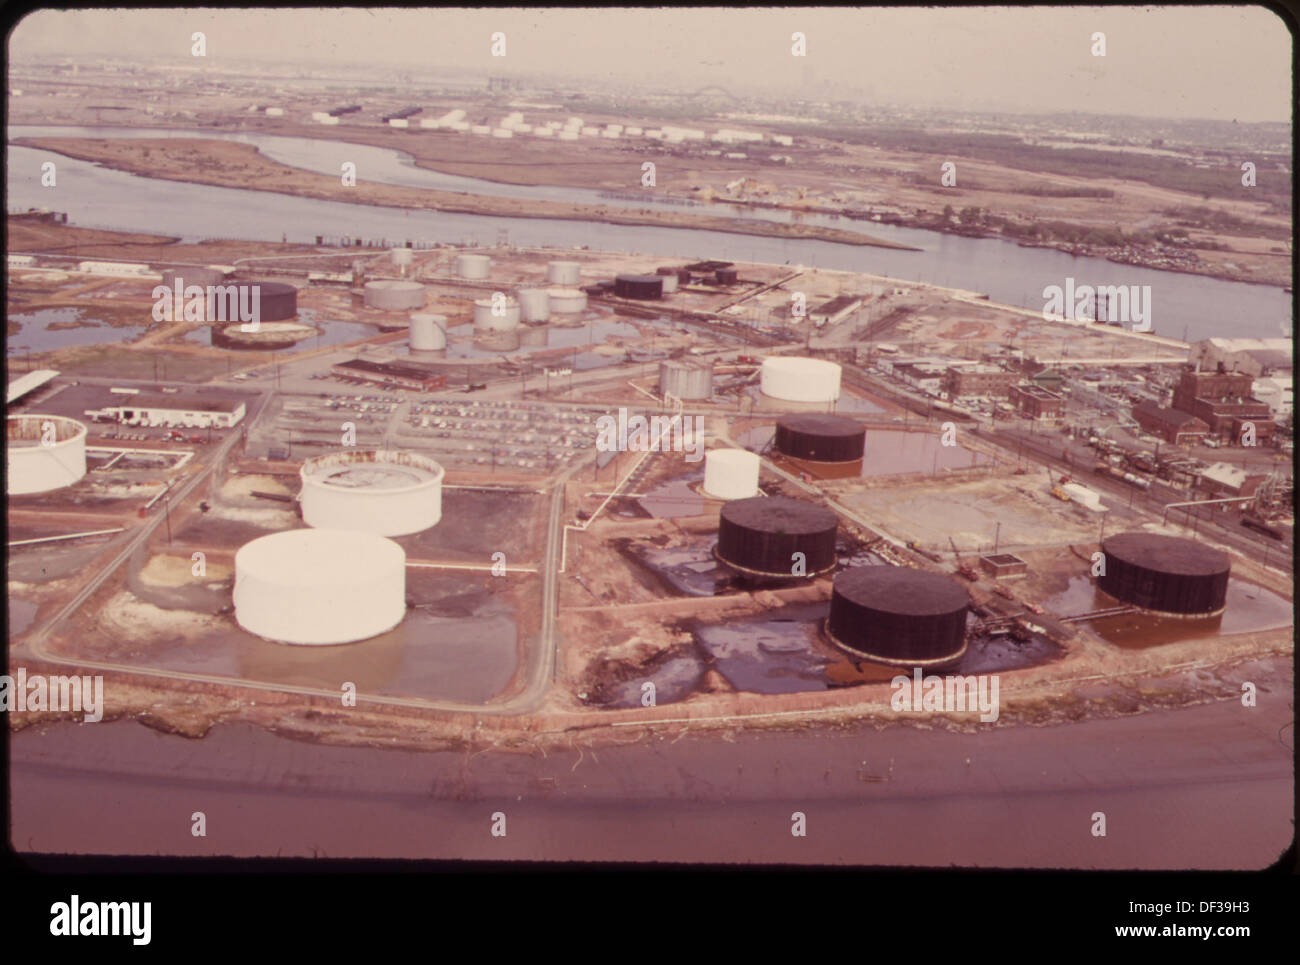 AMERICAN CYANIMID AND BP STORAGE TANKS ON THE NEW JERSEY SIDE OF ARTHUR  KILL, WITH